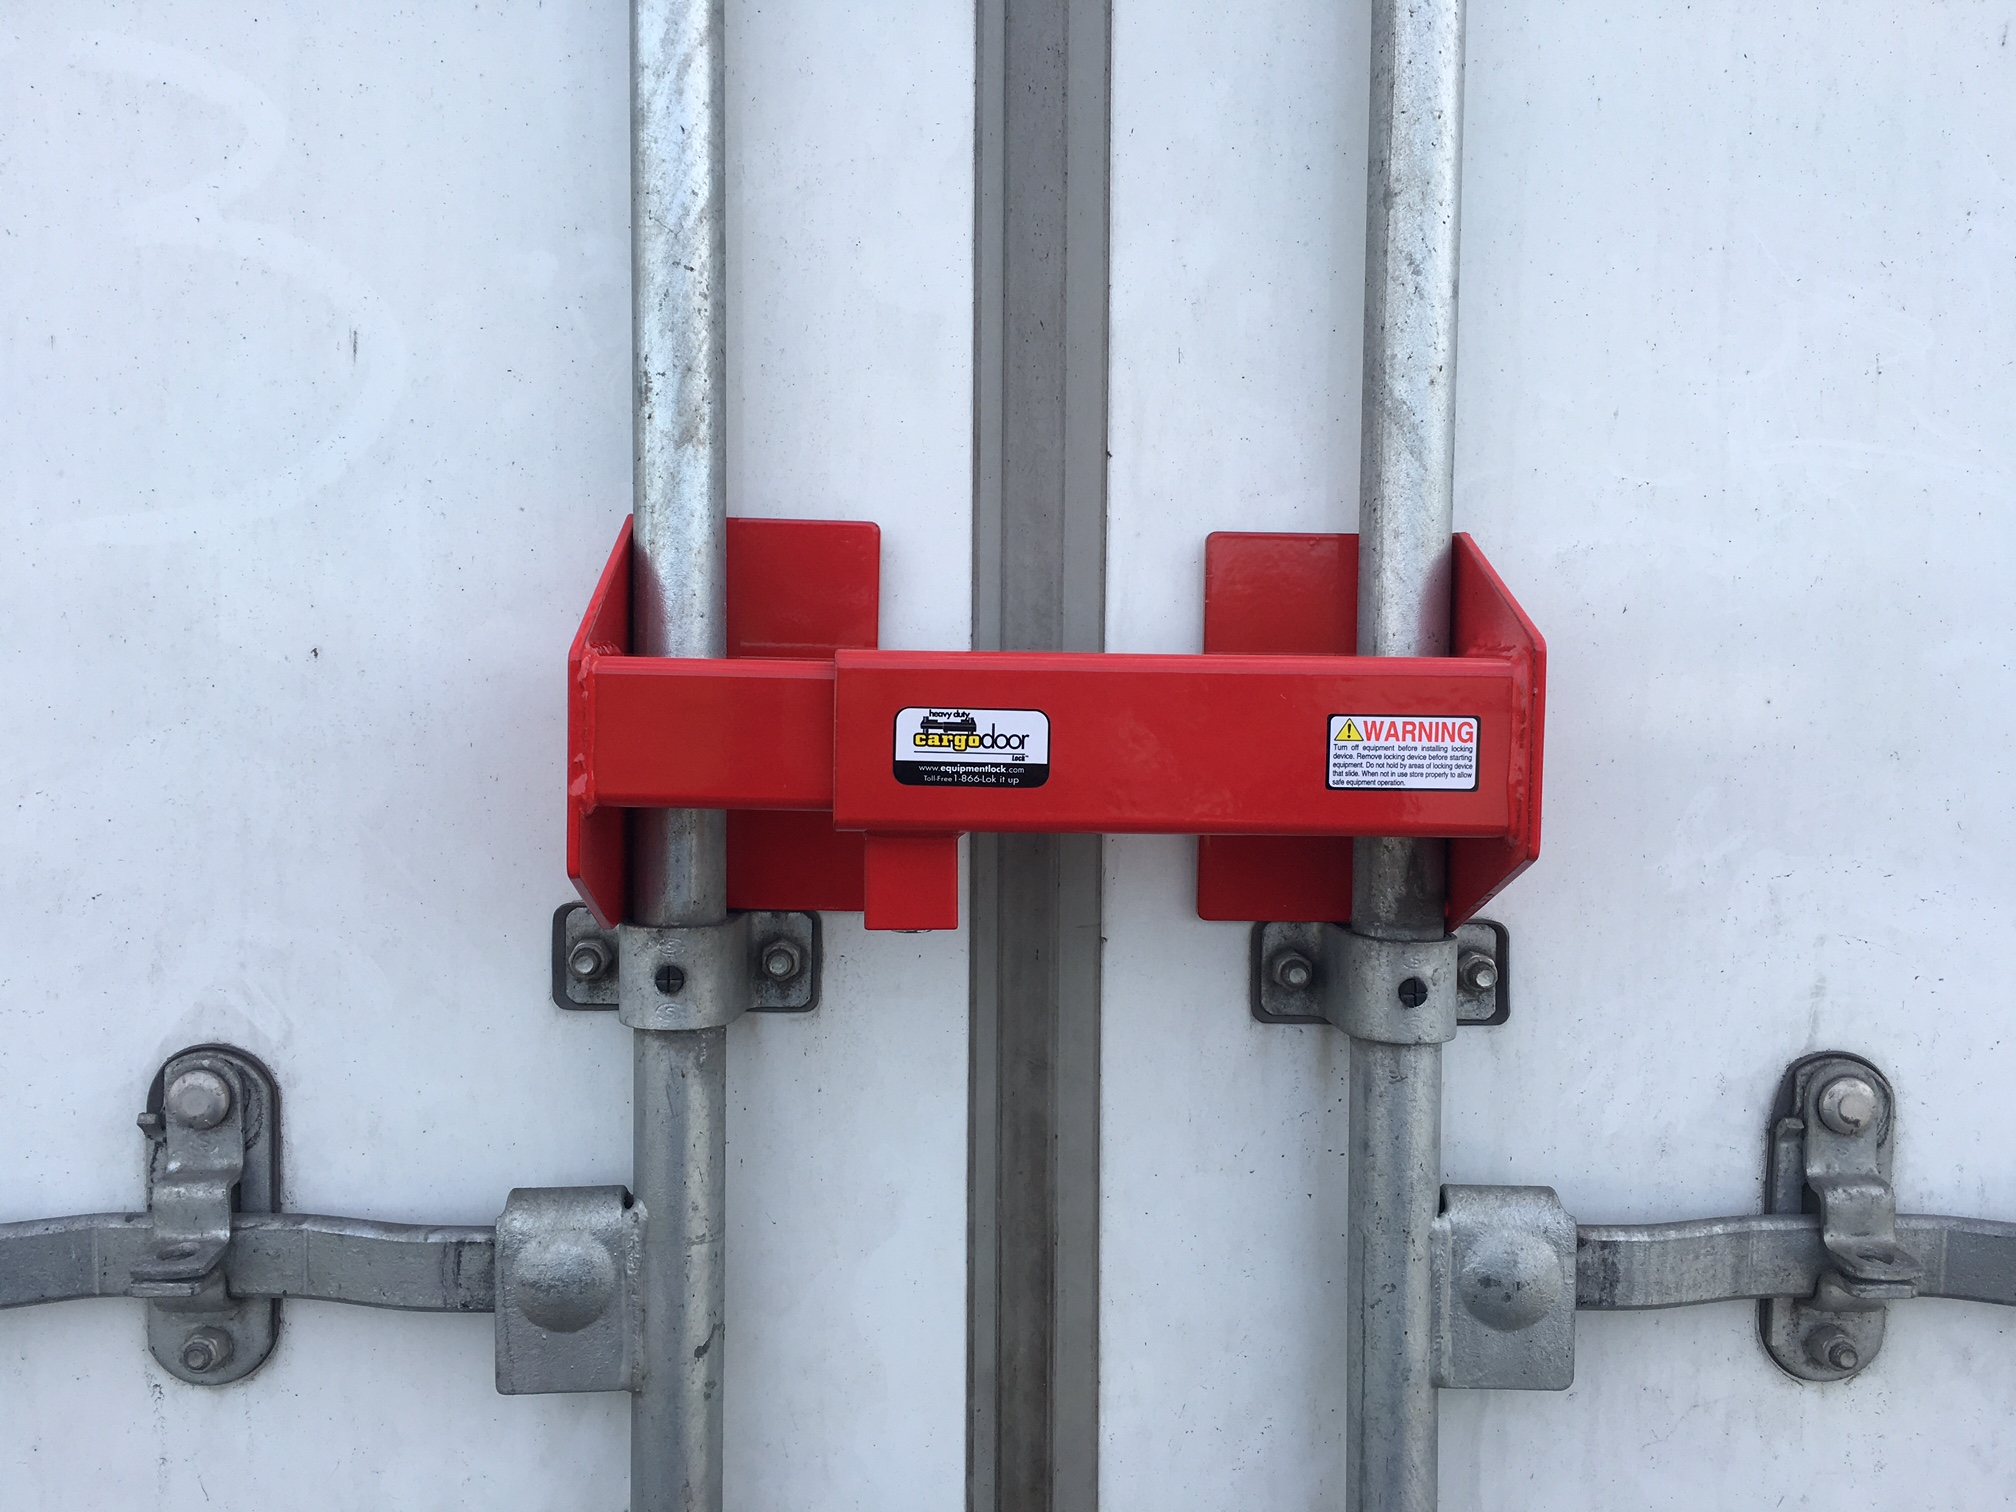 Heavy Duty Cargo Door Lock & Heavy Duty Cargo Door Lock - The Equipment Lock Company